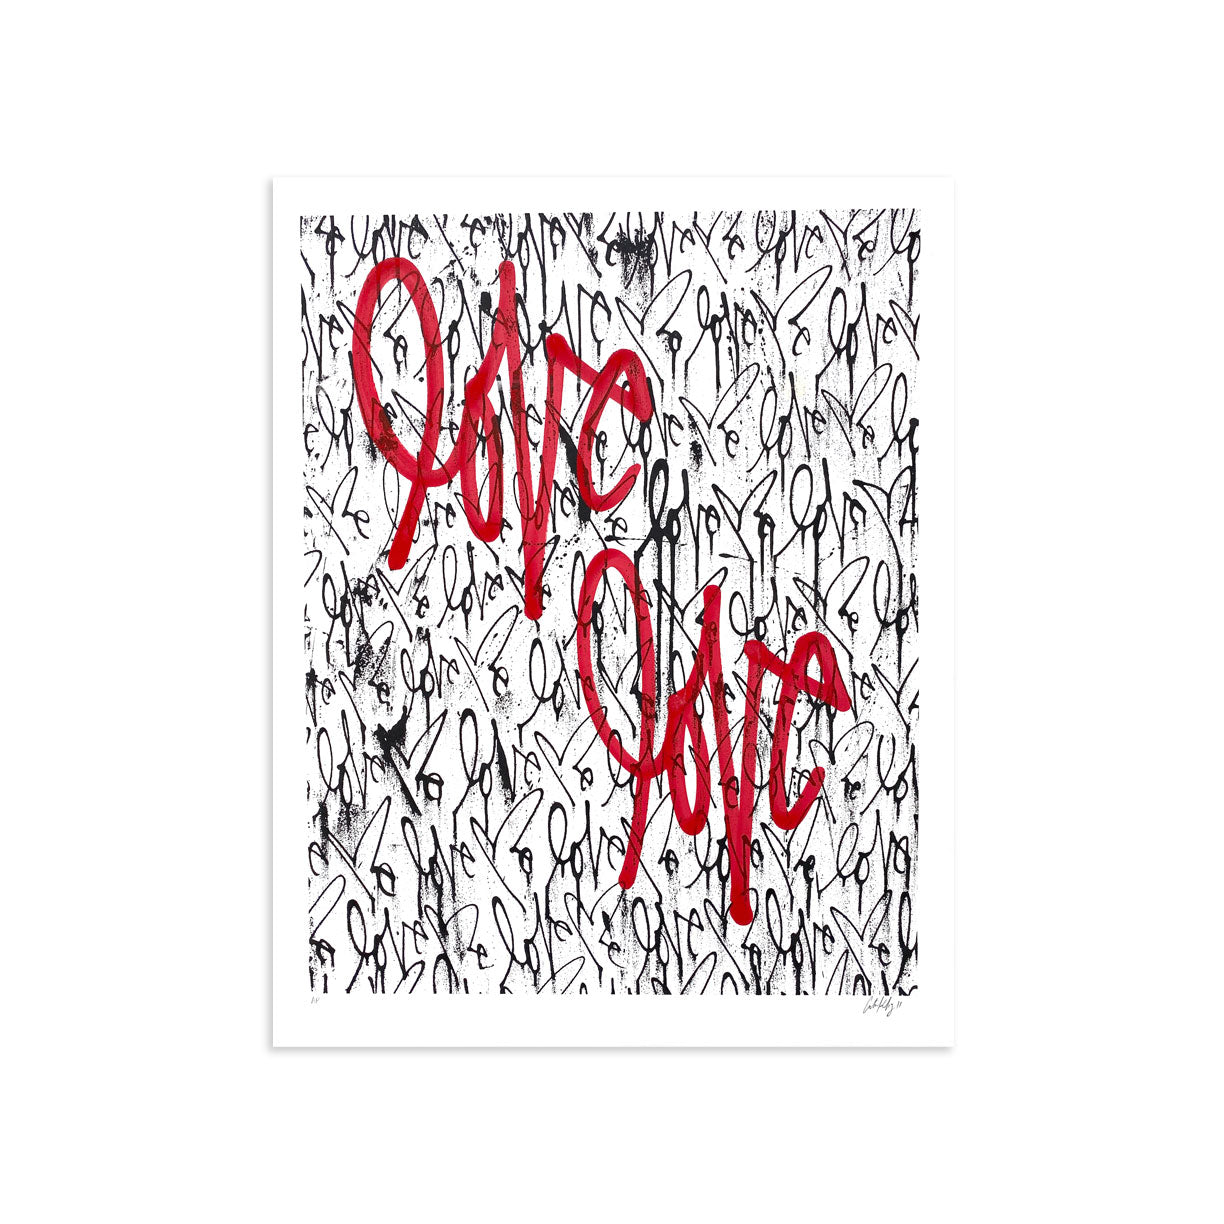 Love Me, Black Friday AE/13 by Curtis Kulig | Artist Edition | Poster Child Prints